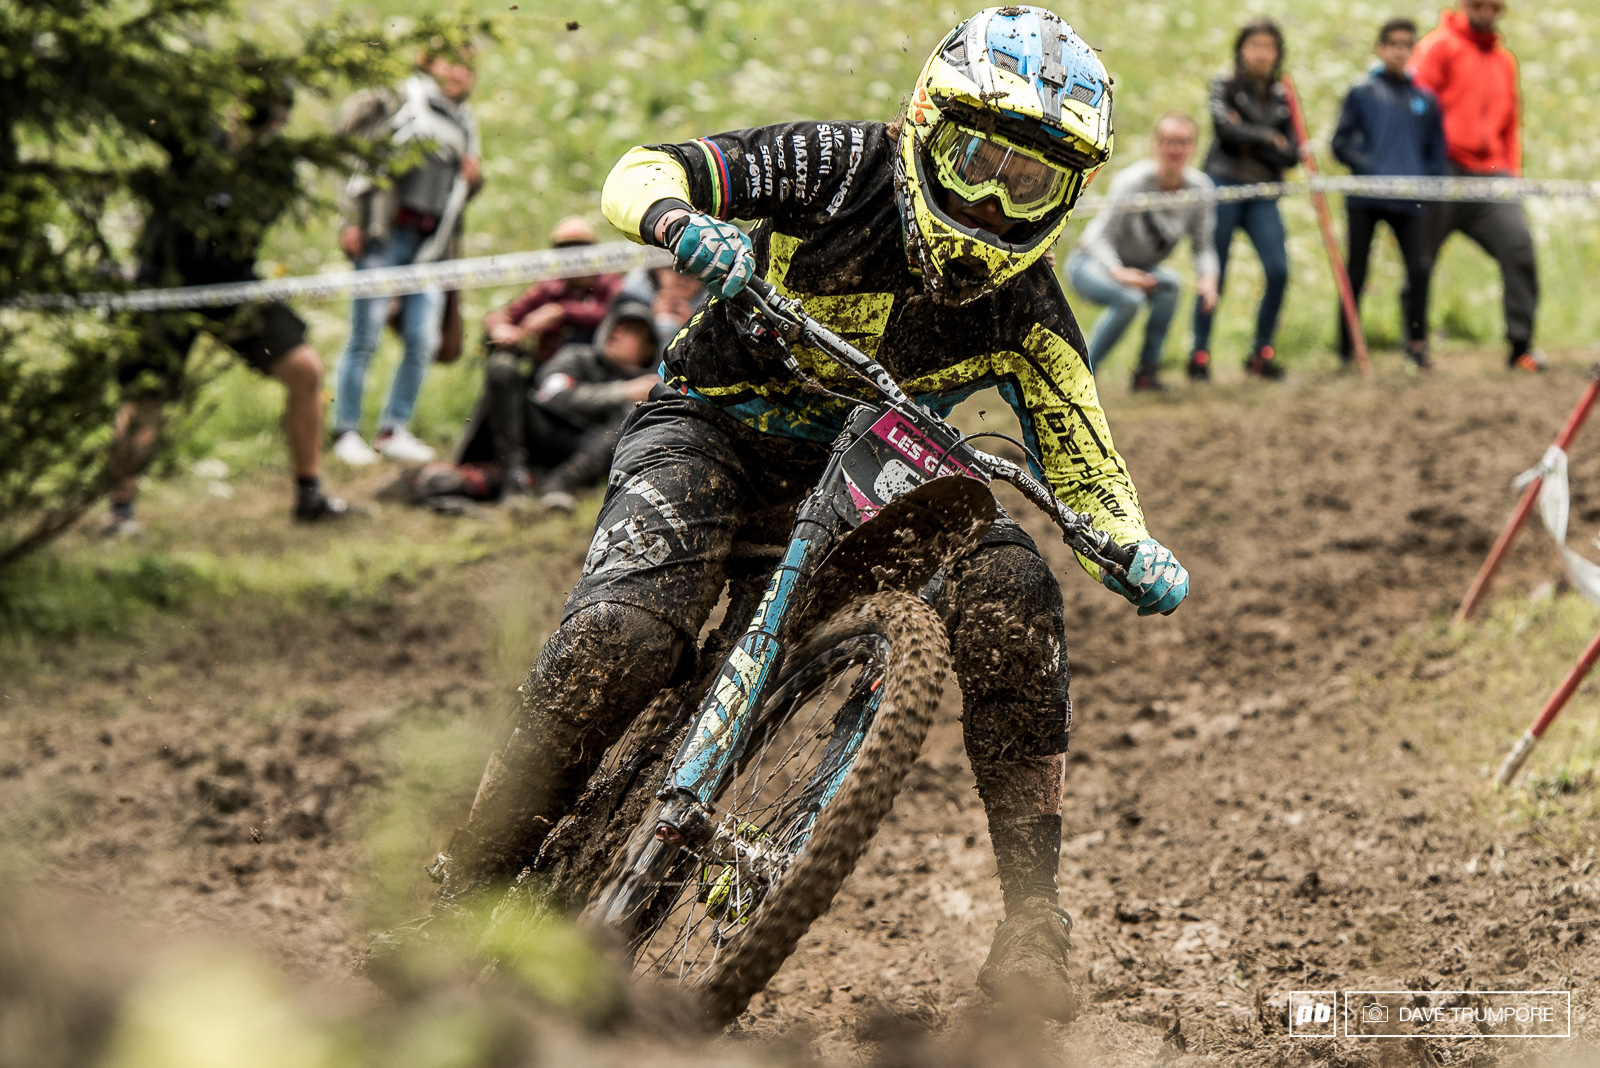 Morgane Charrhas looked extremely comfortable all weekend in the mud and being a life long flat pedal rider had no issues whatsoever. Unlike many of the other women who had switched from clips for this race only.